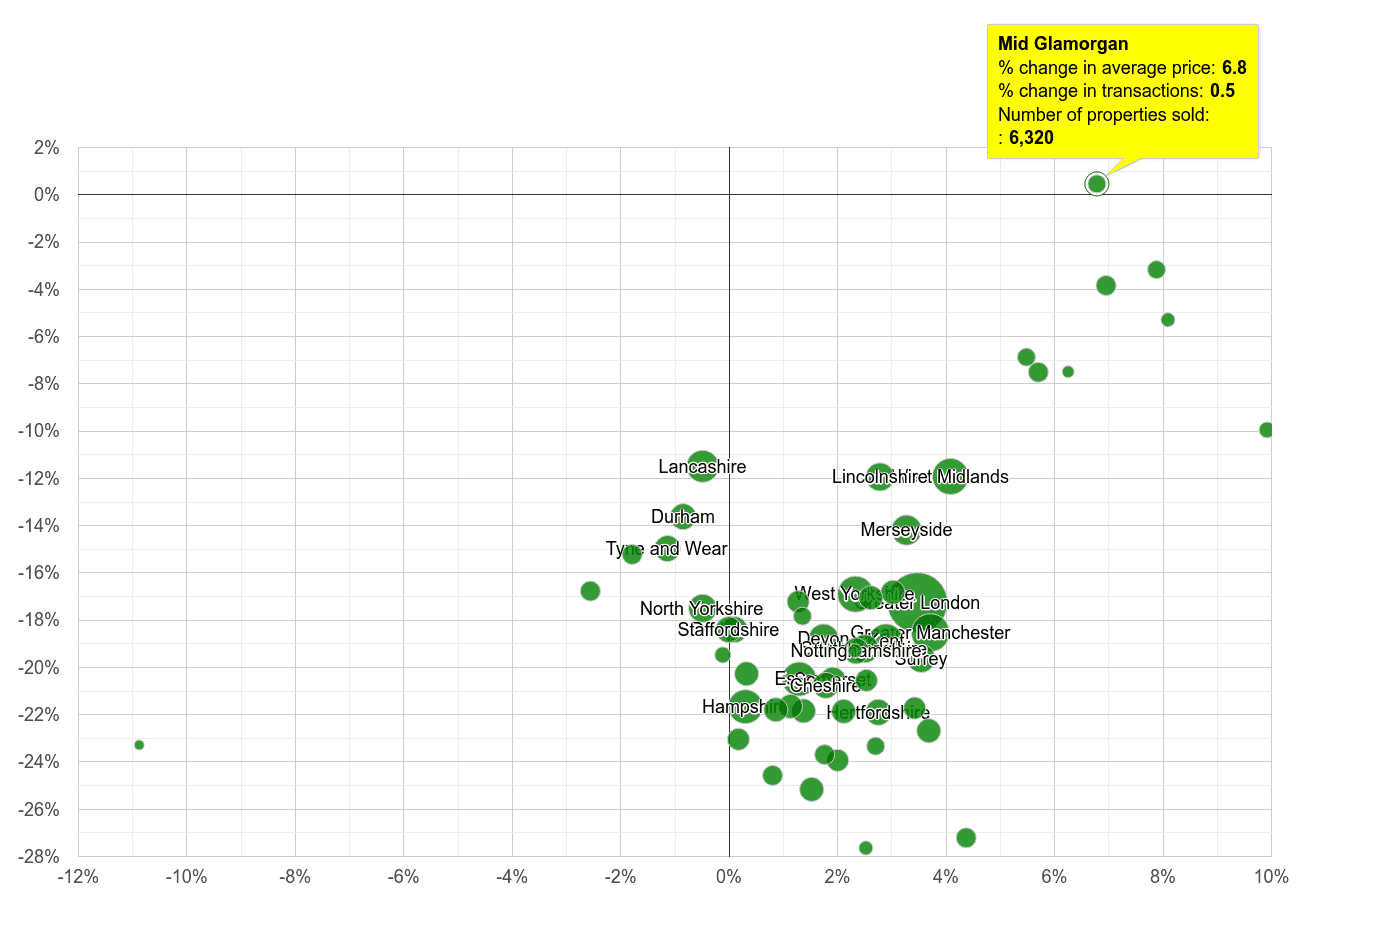 Mid Glamorgan property price and sales volume change relative to other counties